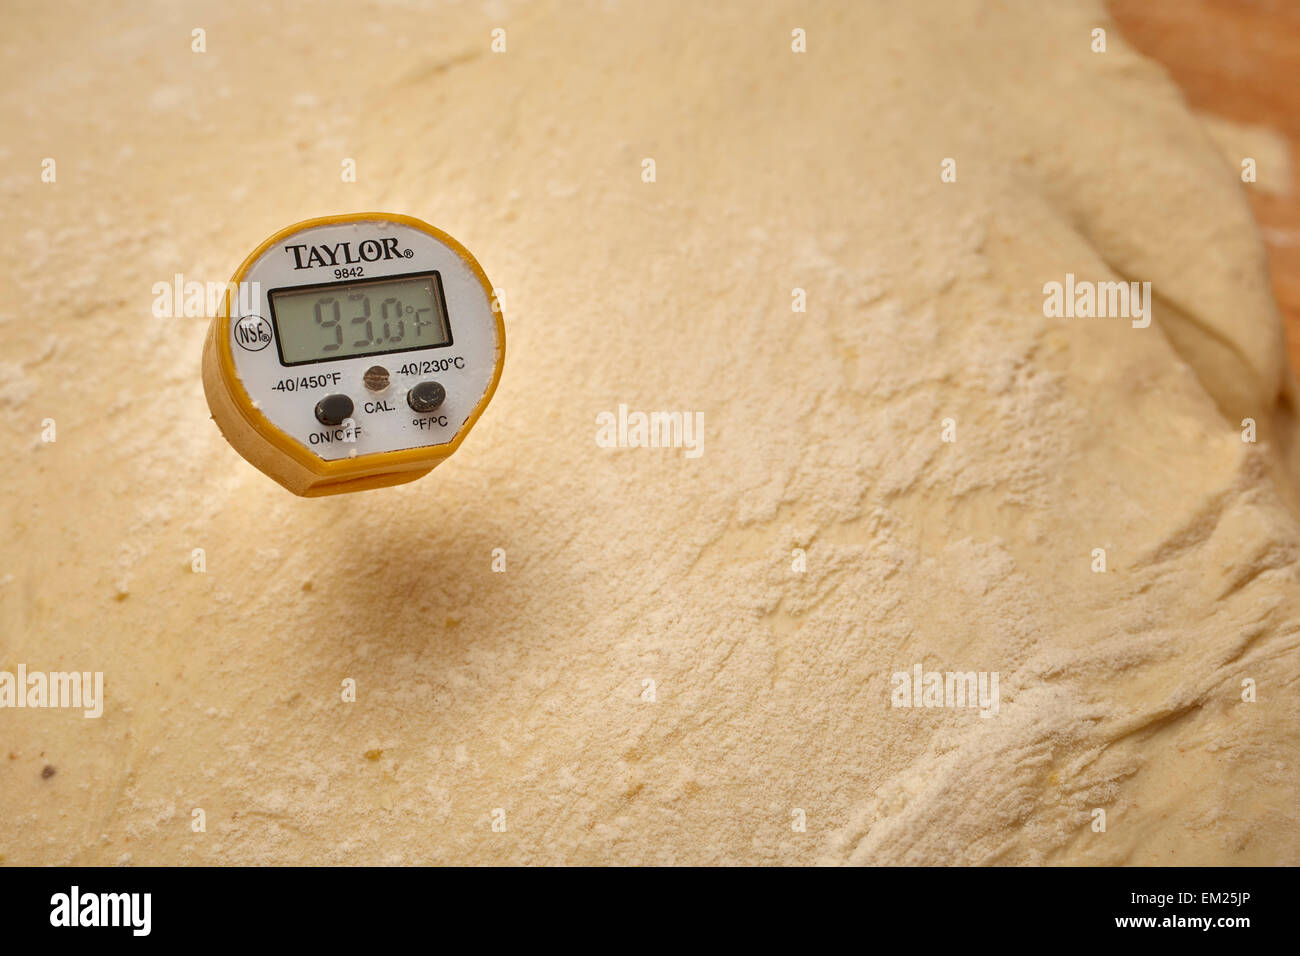 Bread dough being tested for proper temperature at a commercial bakery in Pennsylvania, USA - Stock Image